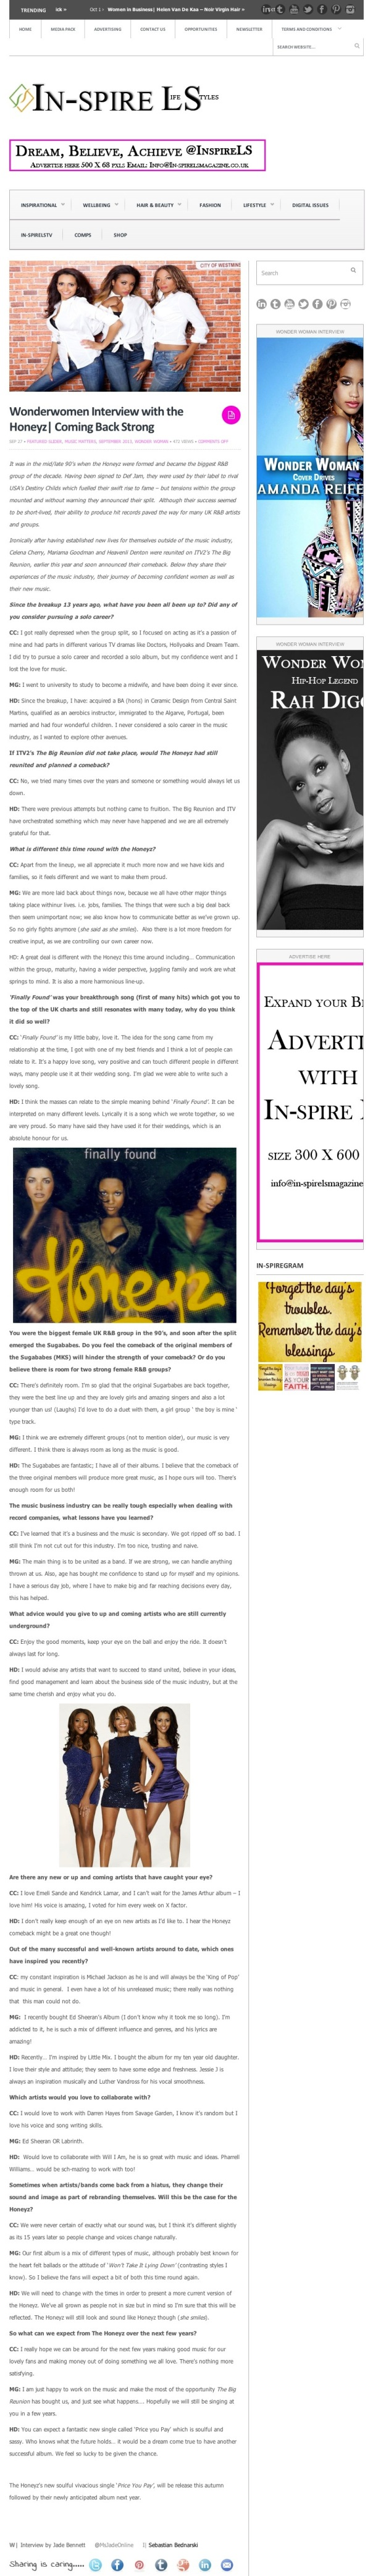 Wonderwomen Interview with the Honeyz| Coming Back Strong | In-spire LS Magazine | In-spireLS Magazine- Your Number One Digital Magazine For Promoting Positive Lifestyles